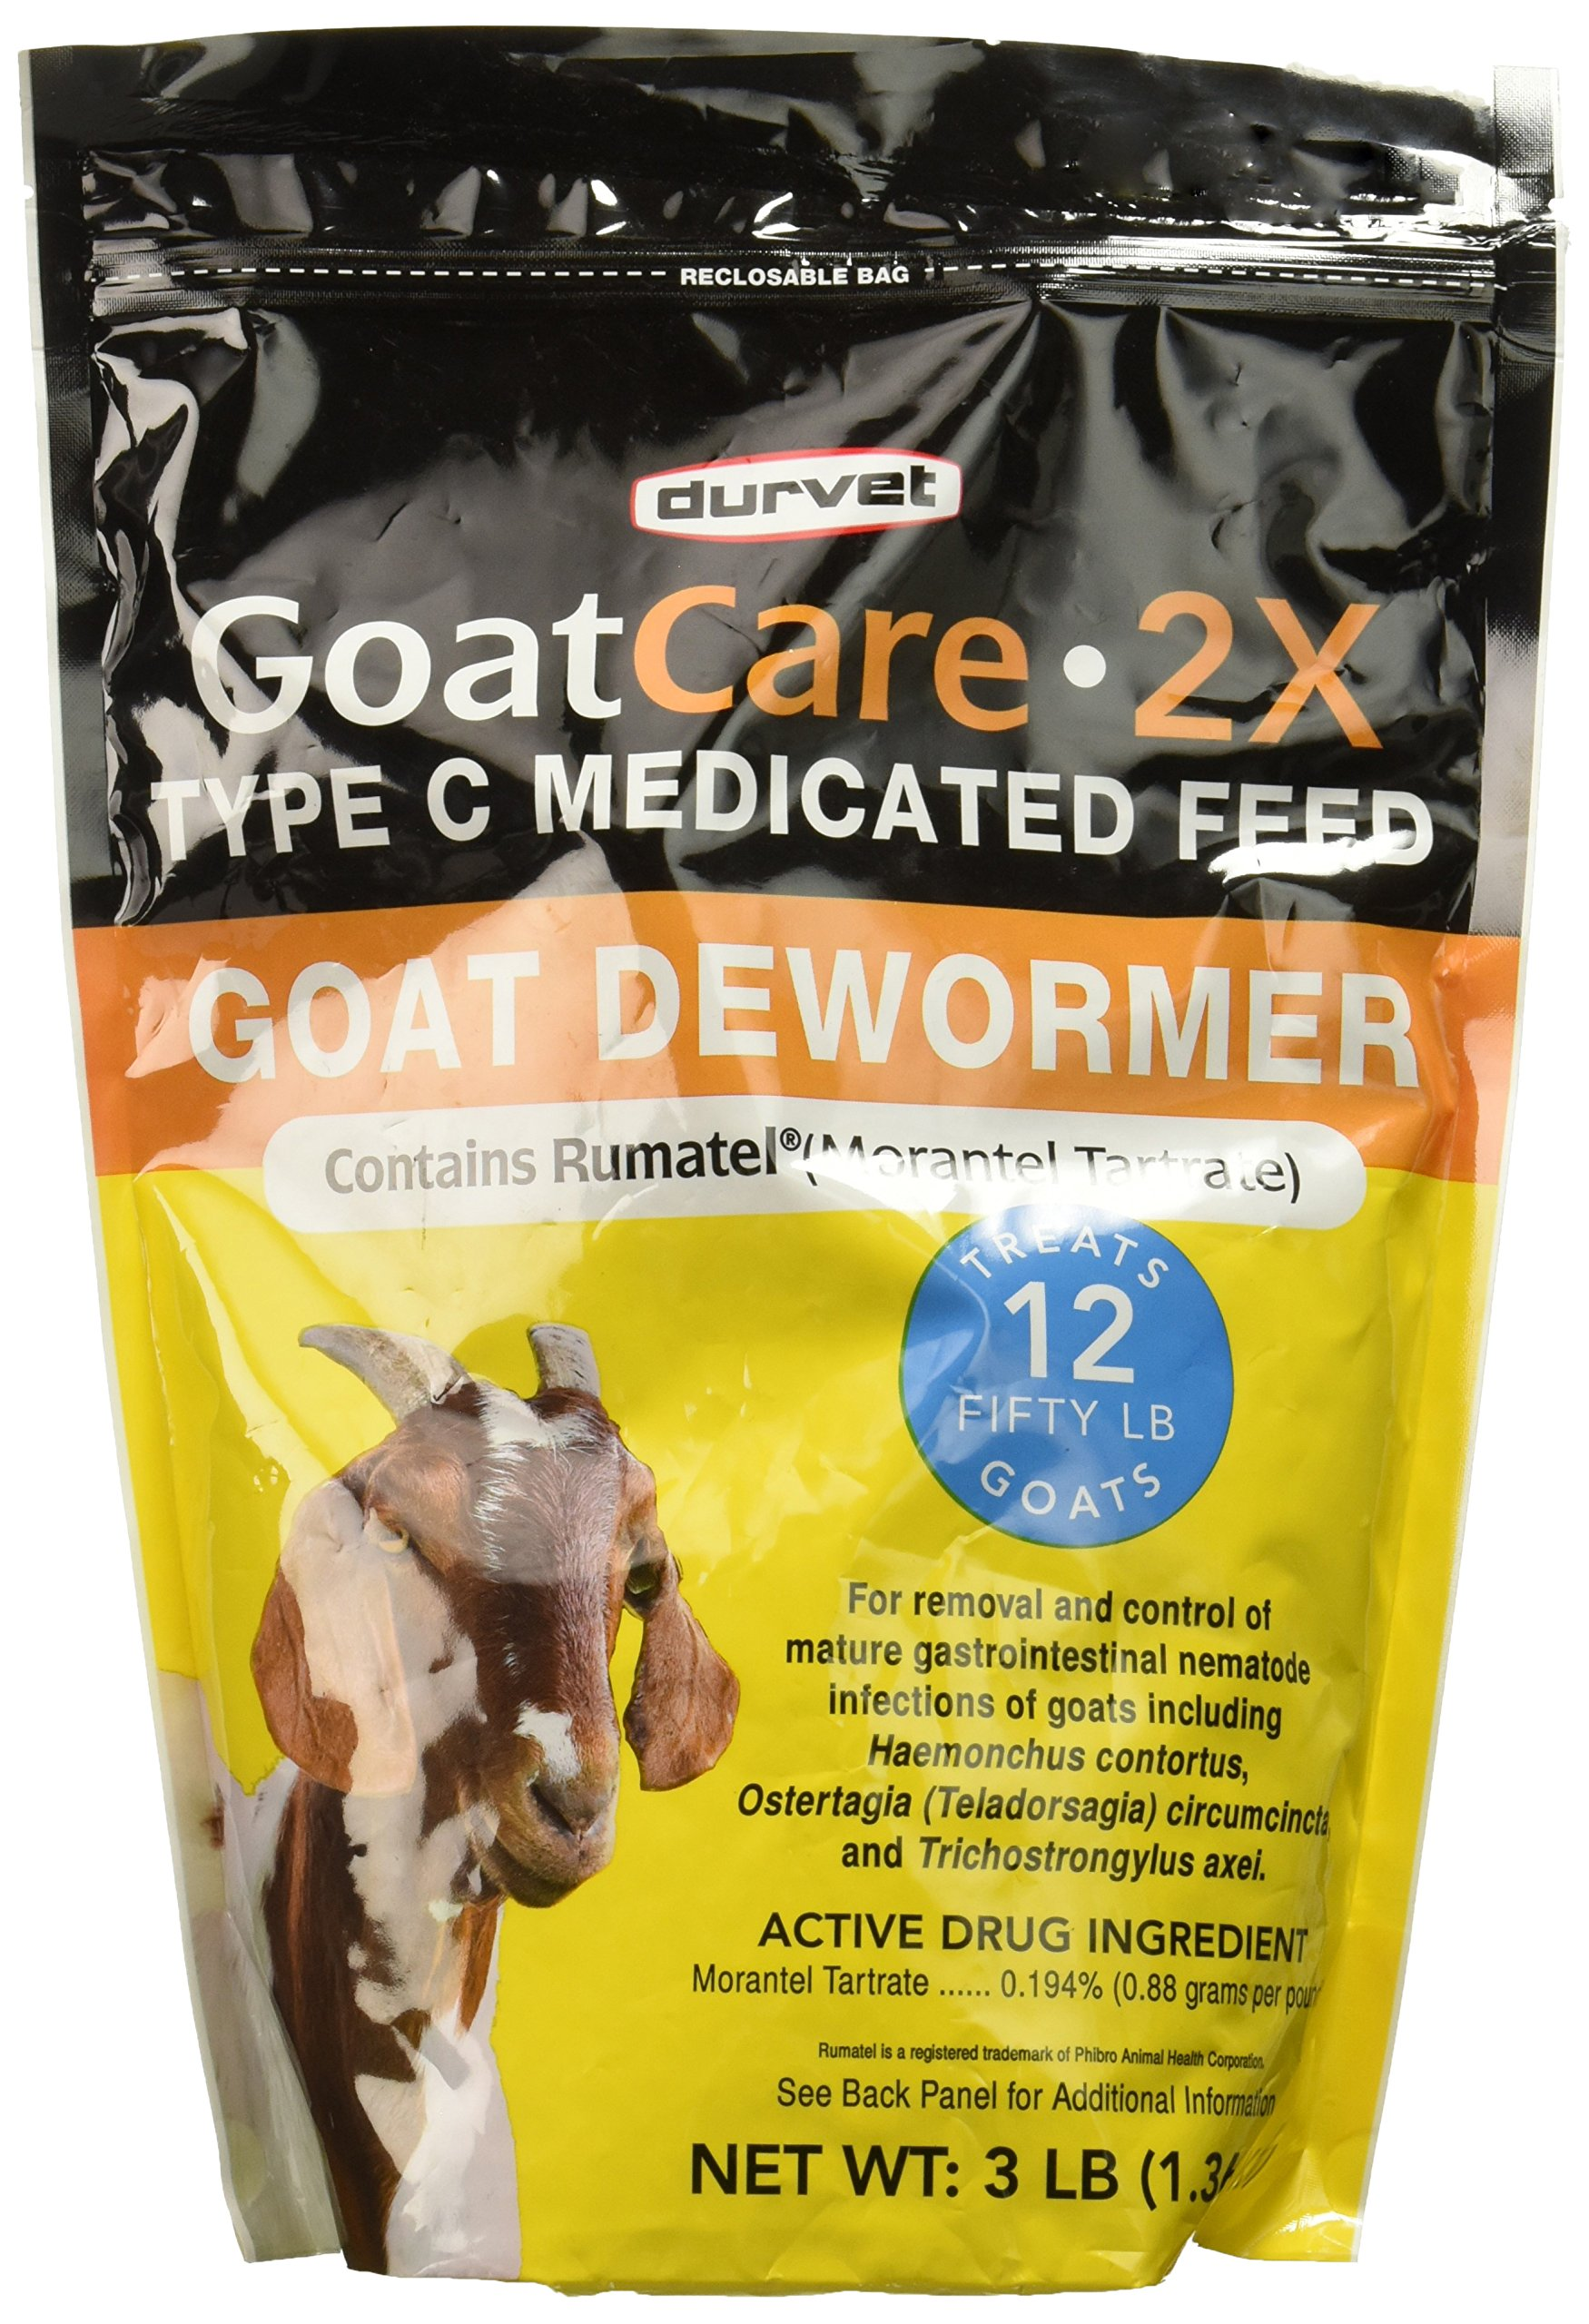 Goat Care 2X Medicated Pellets, Goat Dewormer, 3 Pound Package - Part #: 001-0311 by Durvet